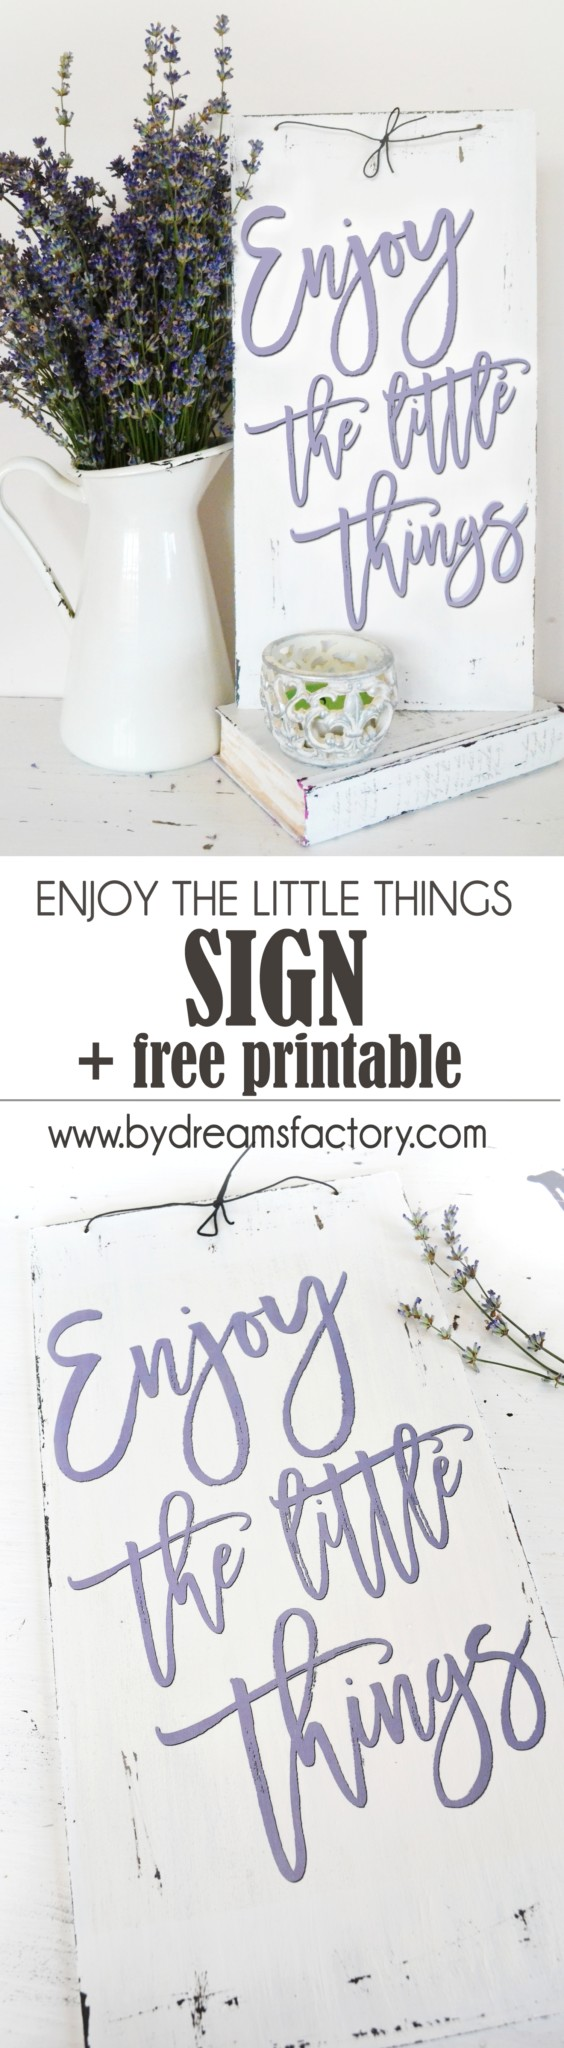 Download the free printable and make an enjoy the little things sign, the perfect reminder to help you slow everything down a little bit and just enjoy the little things | Dreams Factory